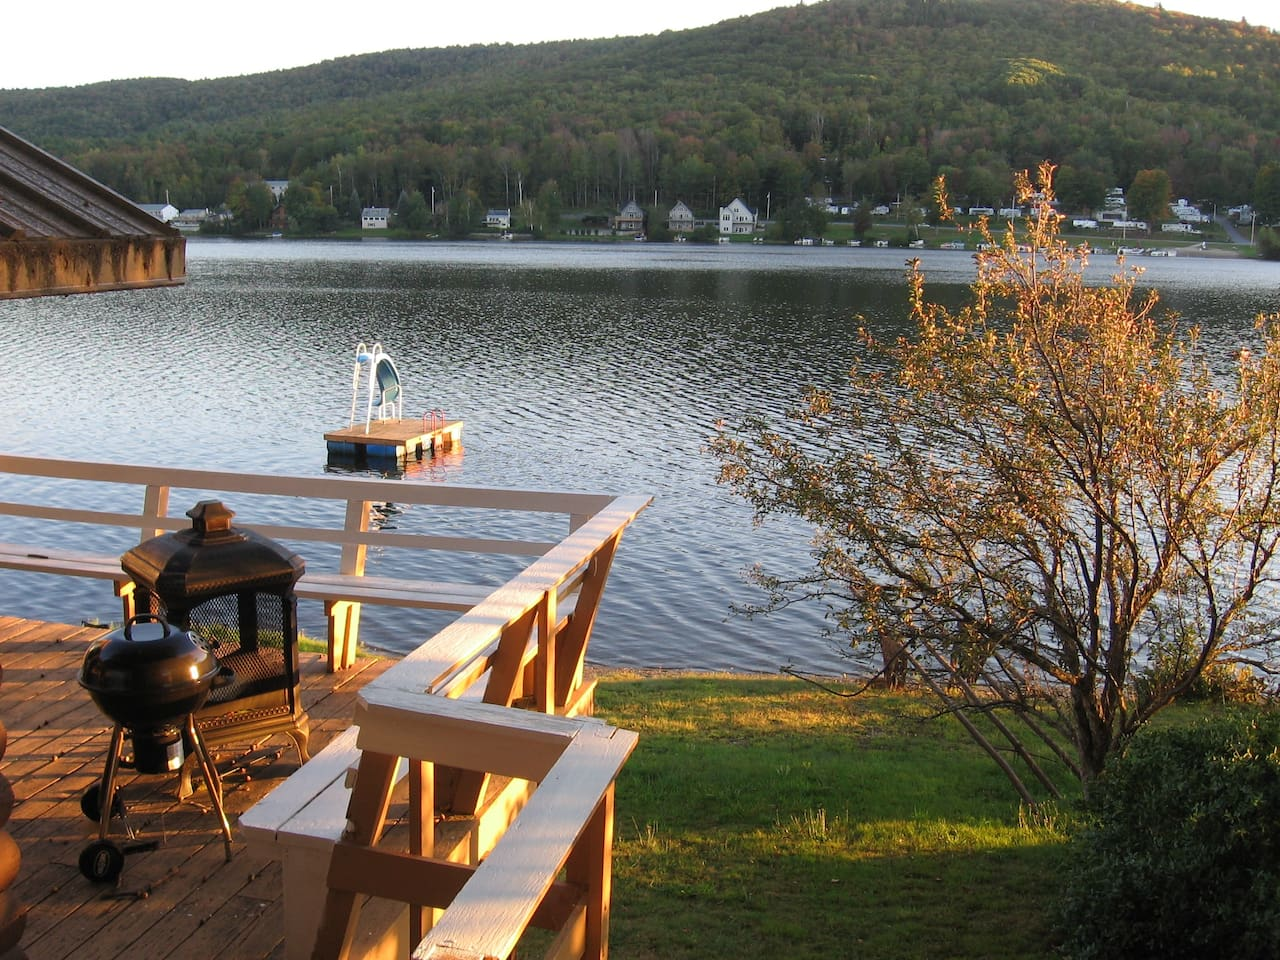 View of the lake from our treehouse; note the deck with fireplace.